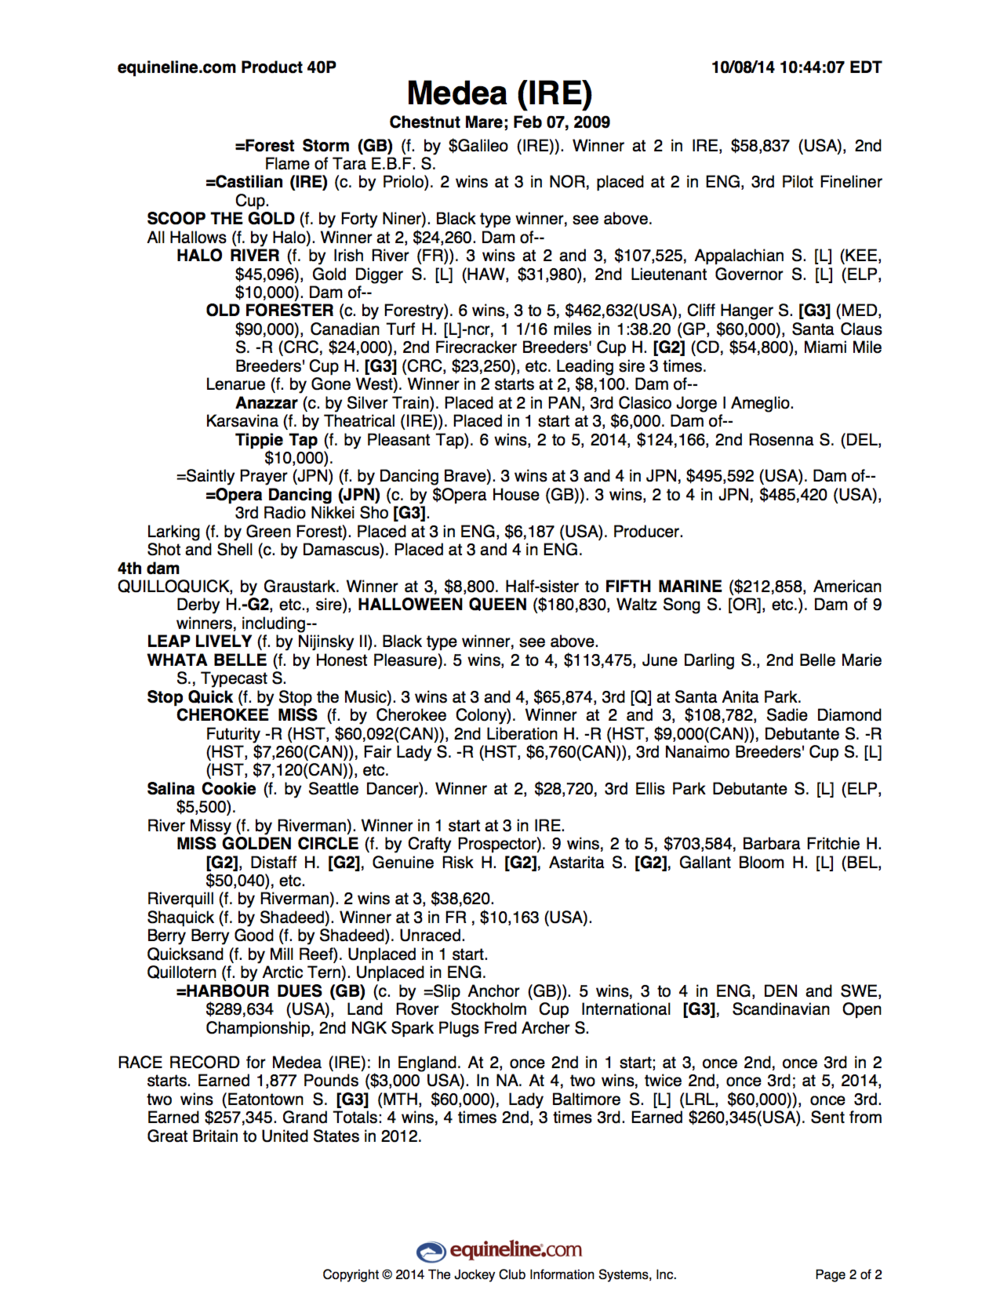 MEDEA 100814 PEDIGREE copy 2.png